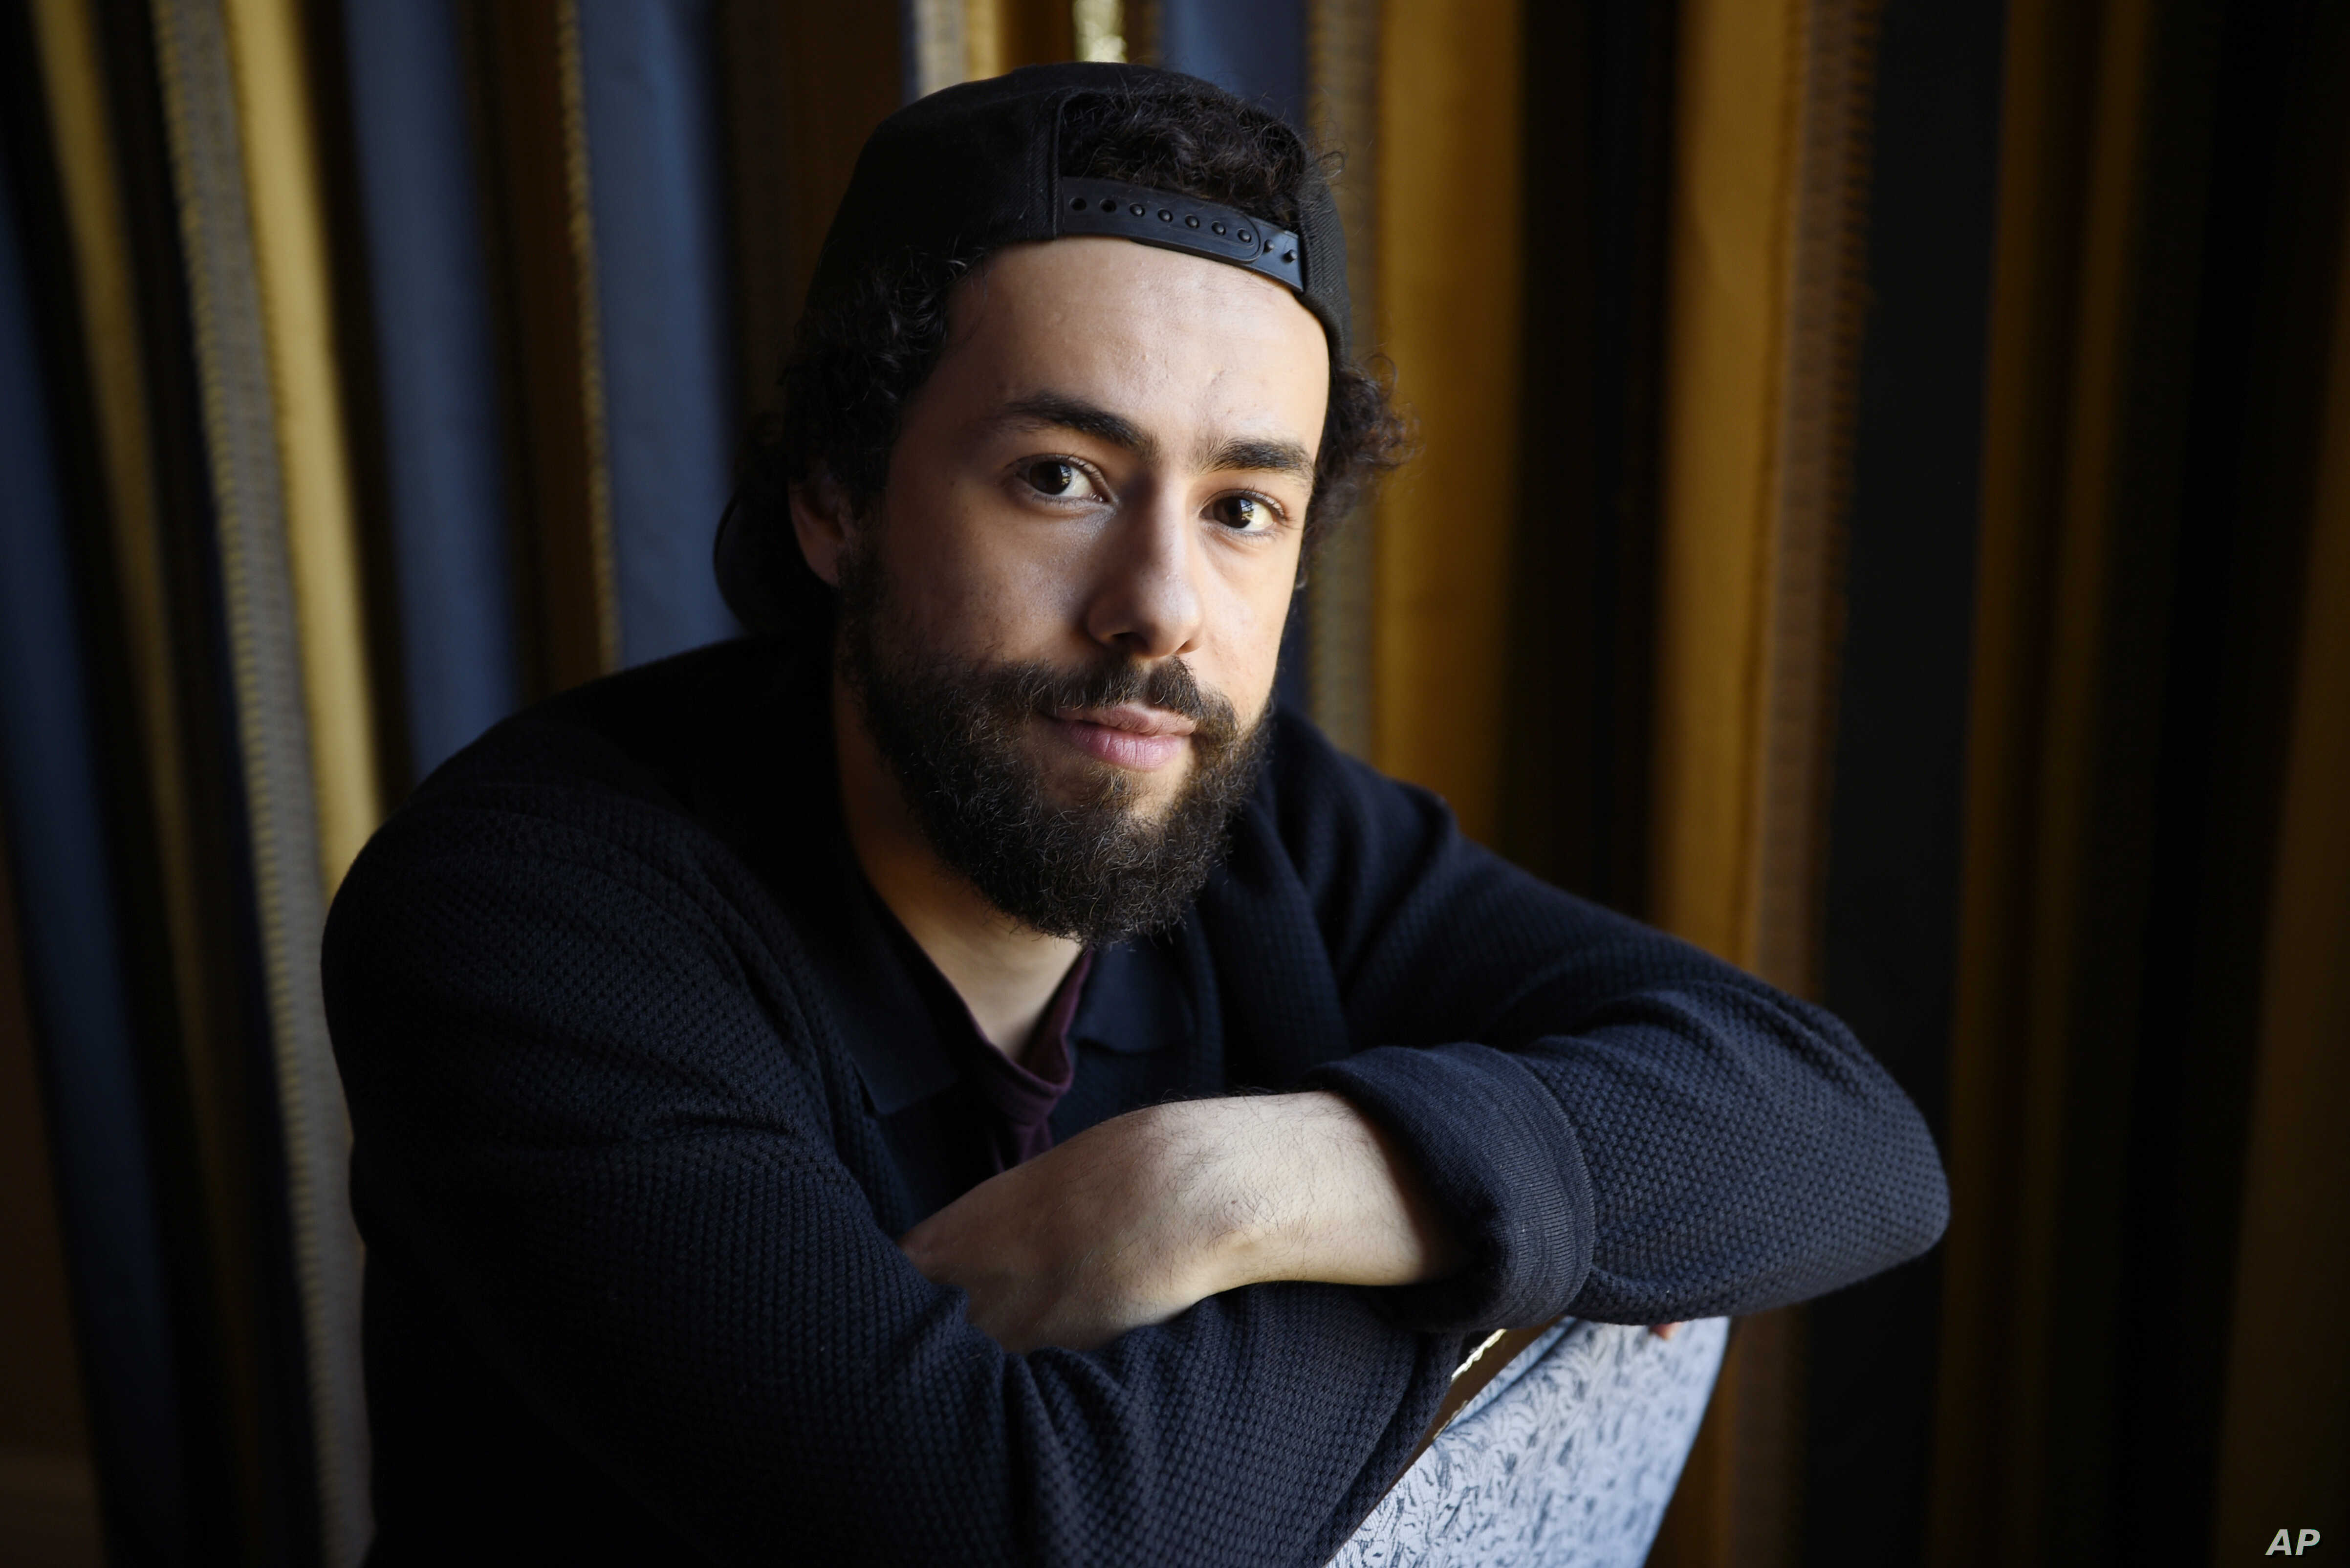 """FILE - Ramy Youssef, star of the Hulu series """"Ramy,"""" is pictured during the 2019 Winter Television Critics Association Press Tour, Feb. 11, 2019, in Pasadena, Calif."""